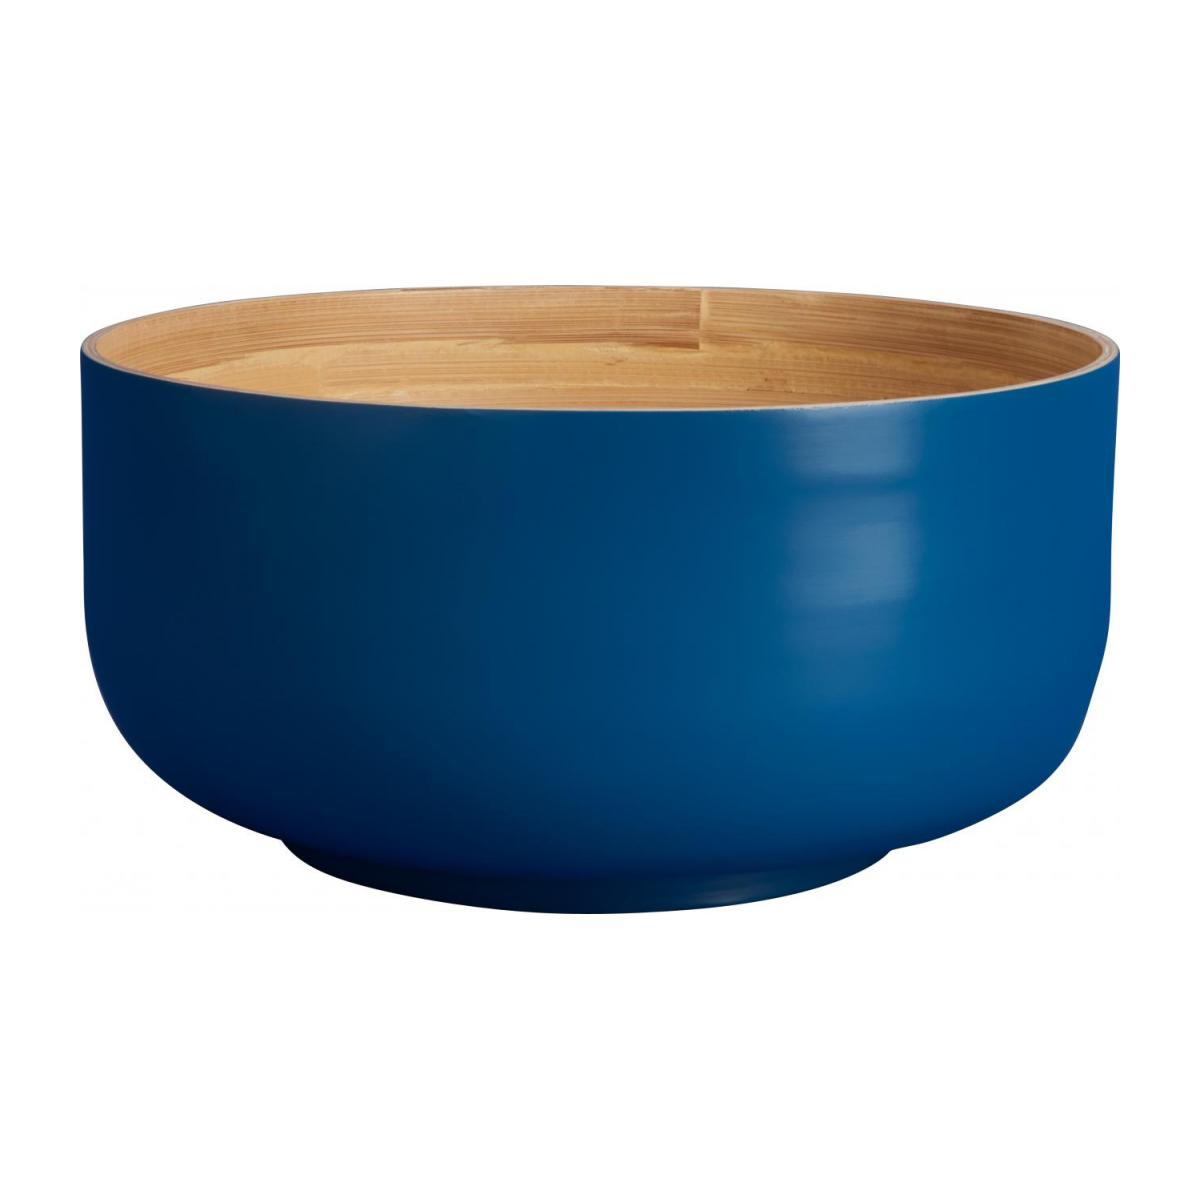 Grand Bowl made of bamboo 25cm, blue n°1